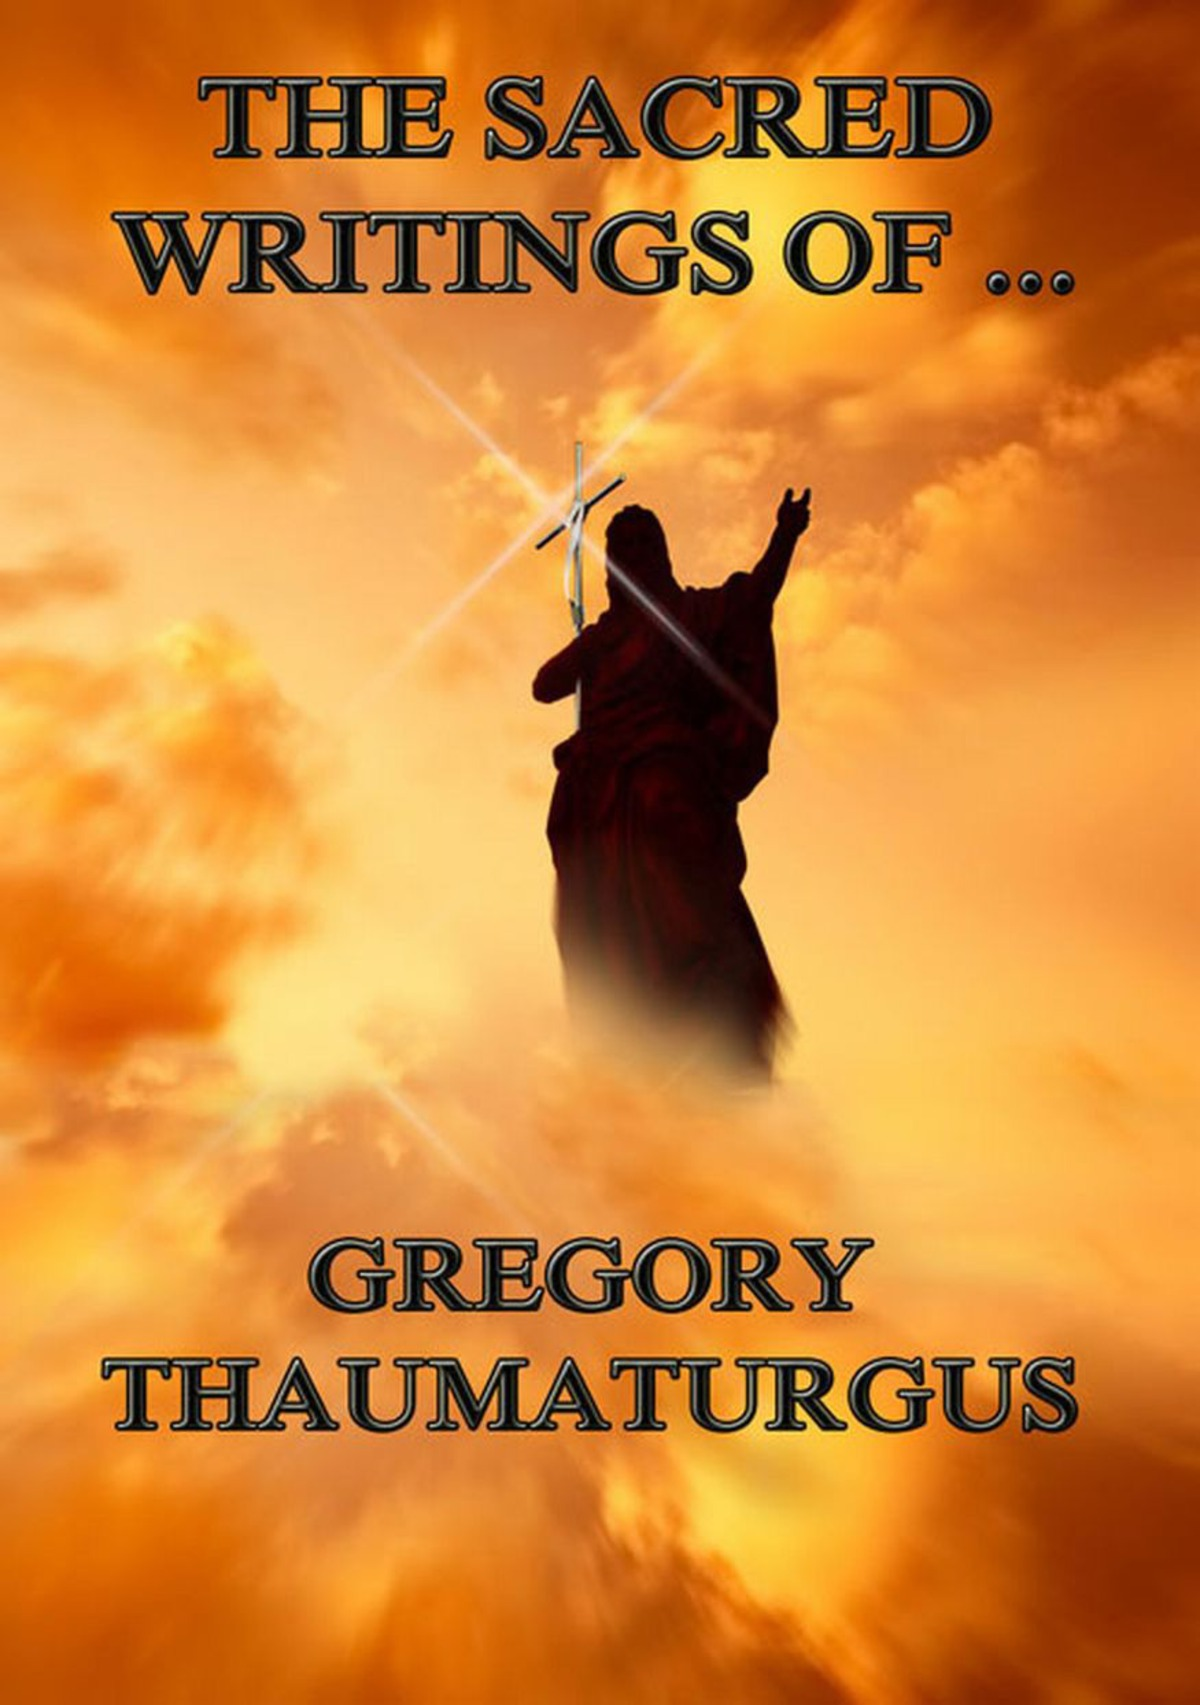 The Sacred Writings of Gregory Thaumaturgus: Extended Annotated Edition